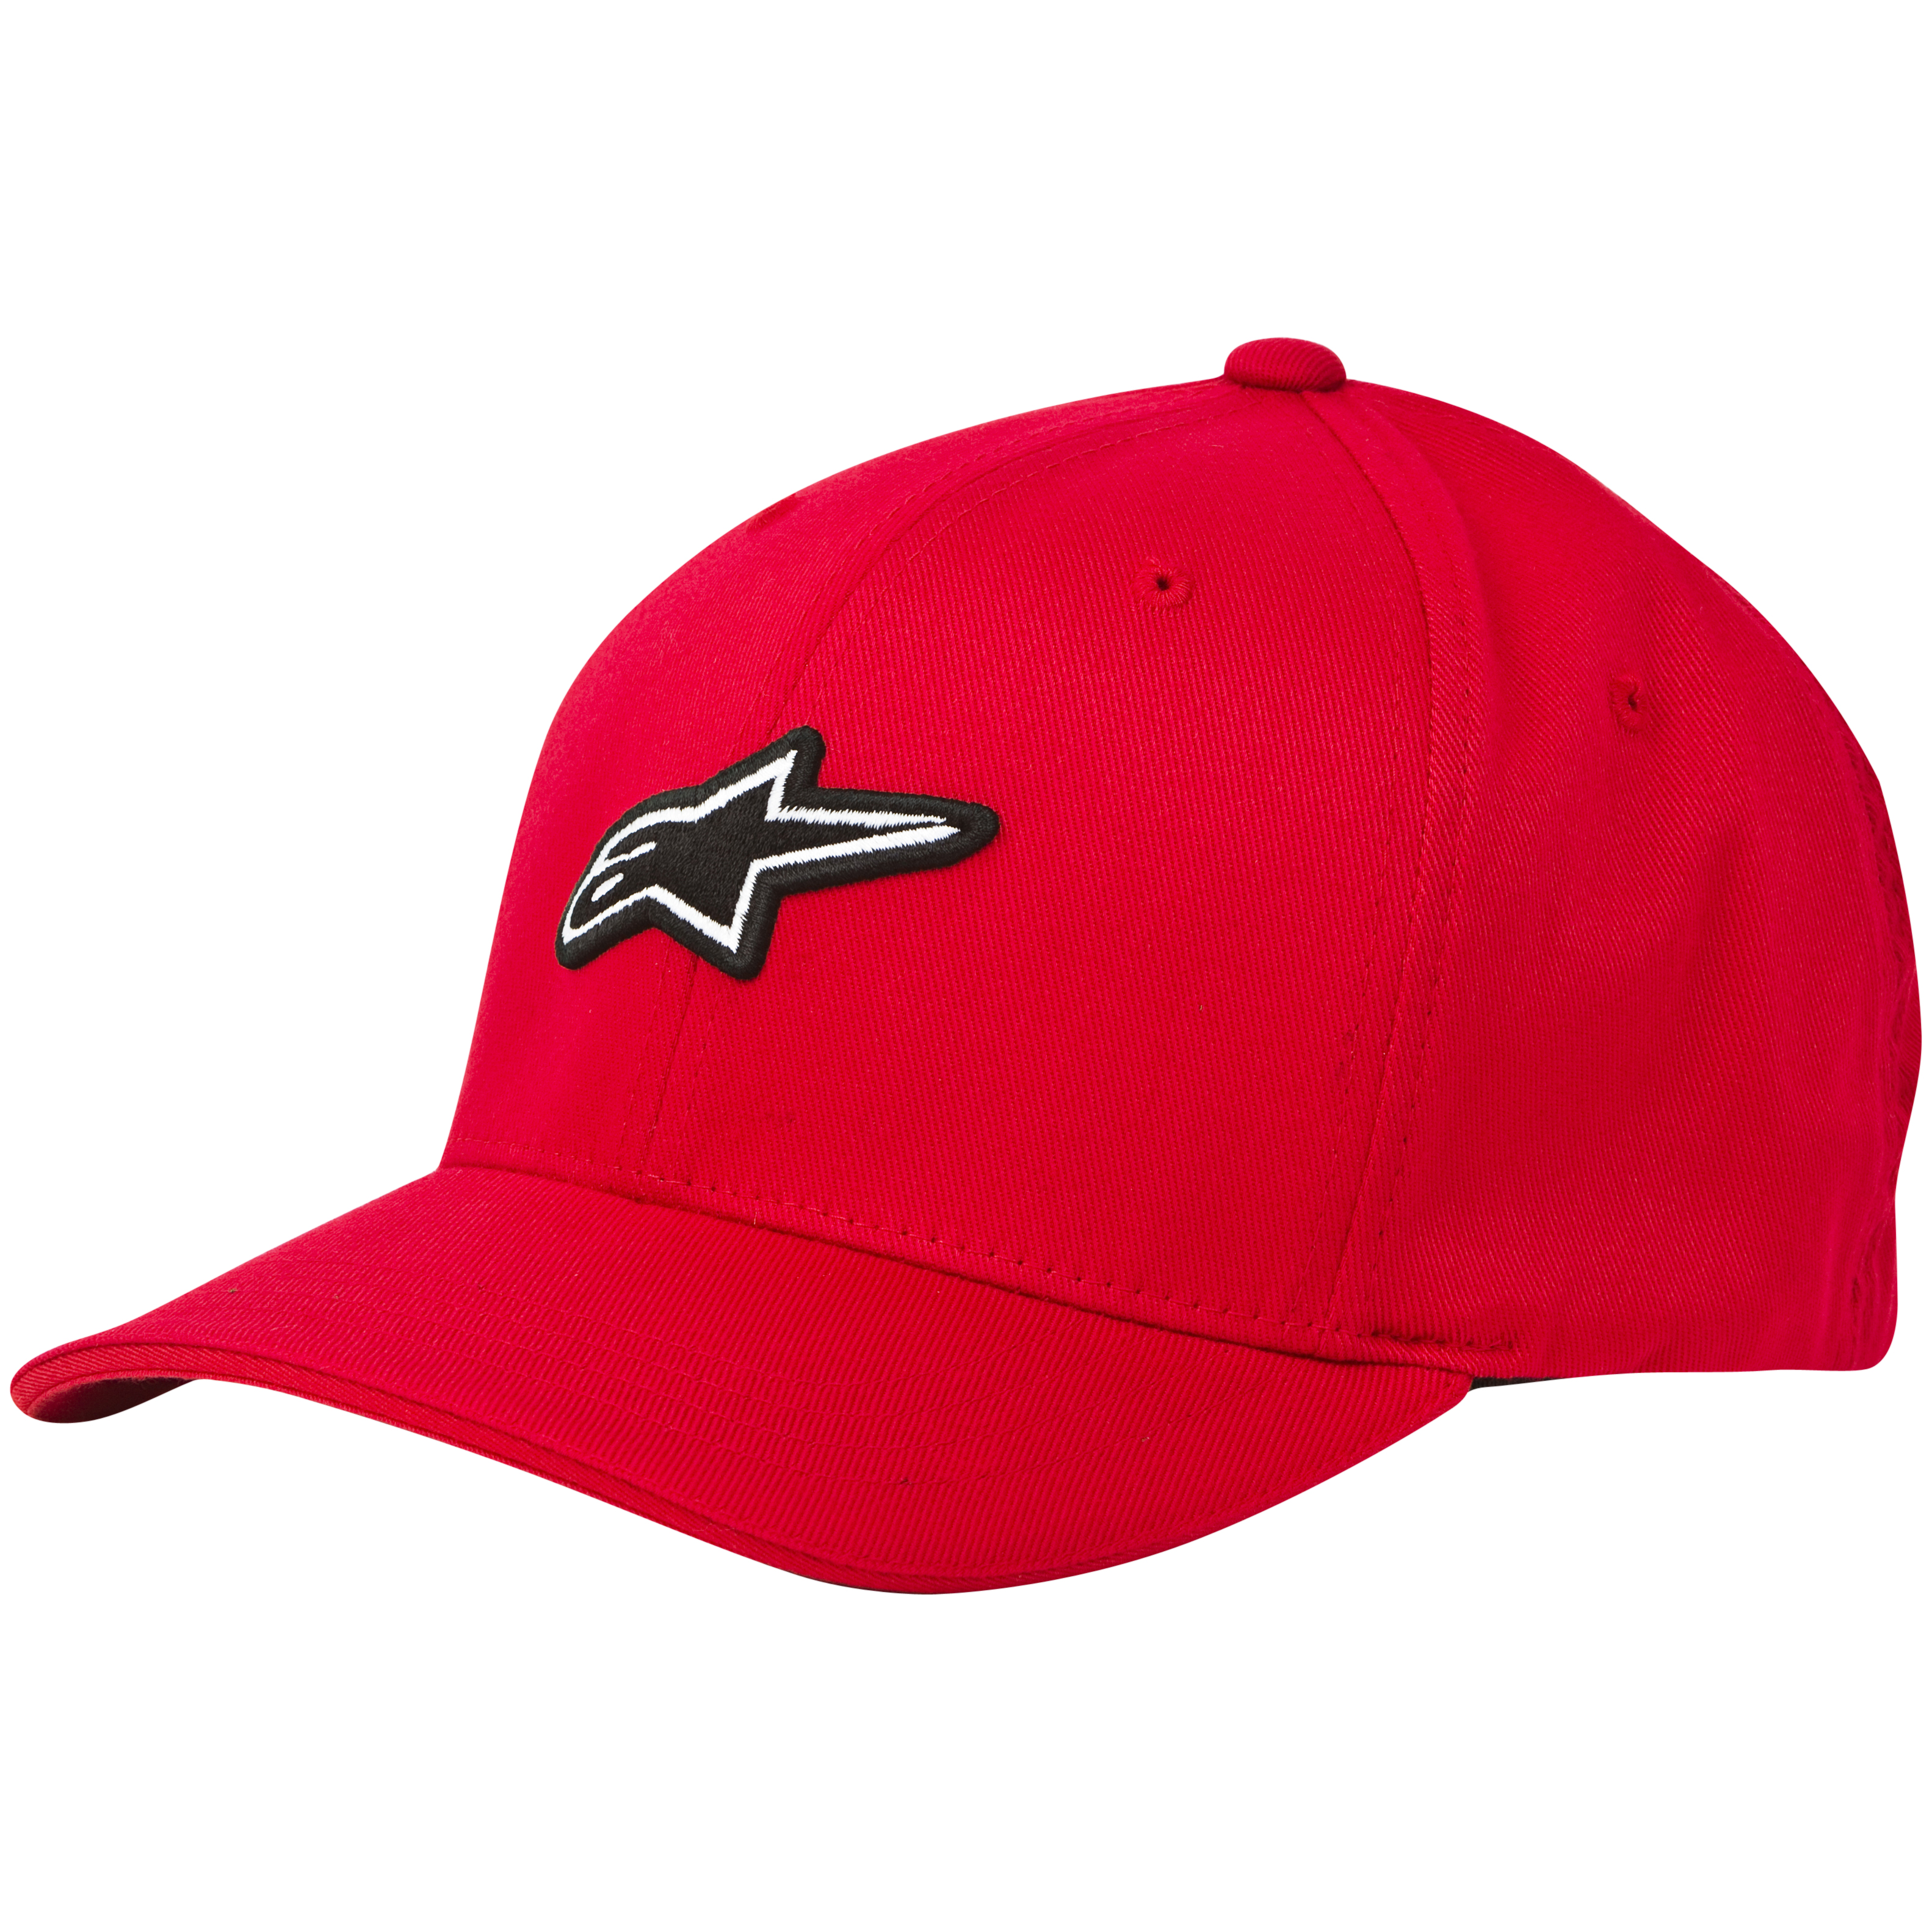 Alpinestars Raised Flexfit Hat - Red